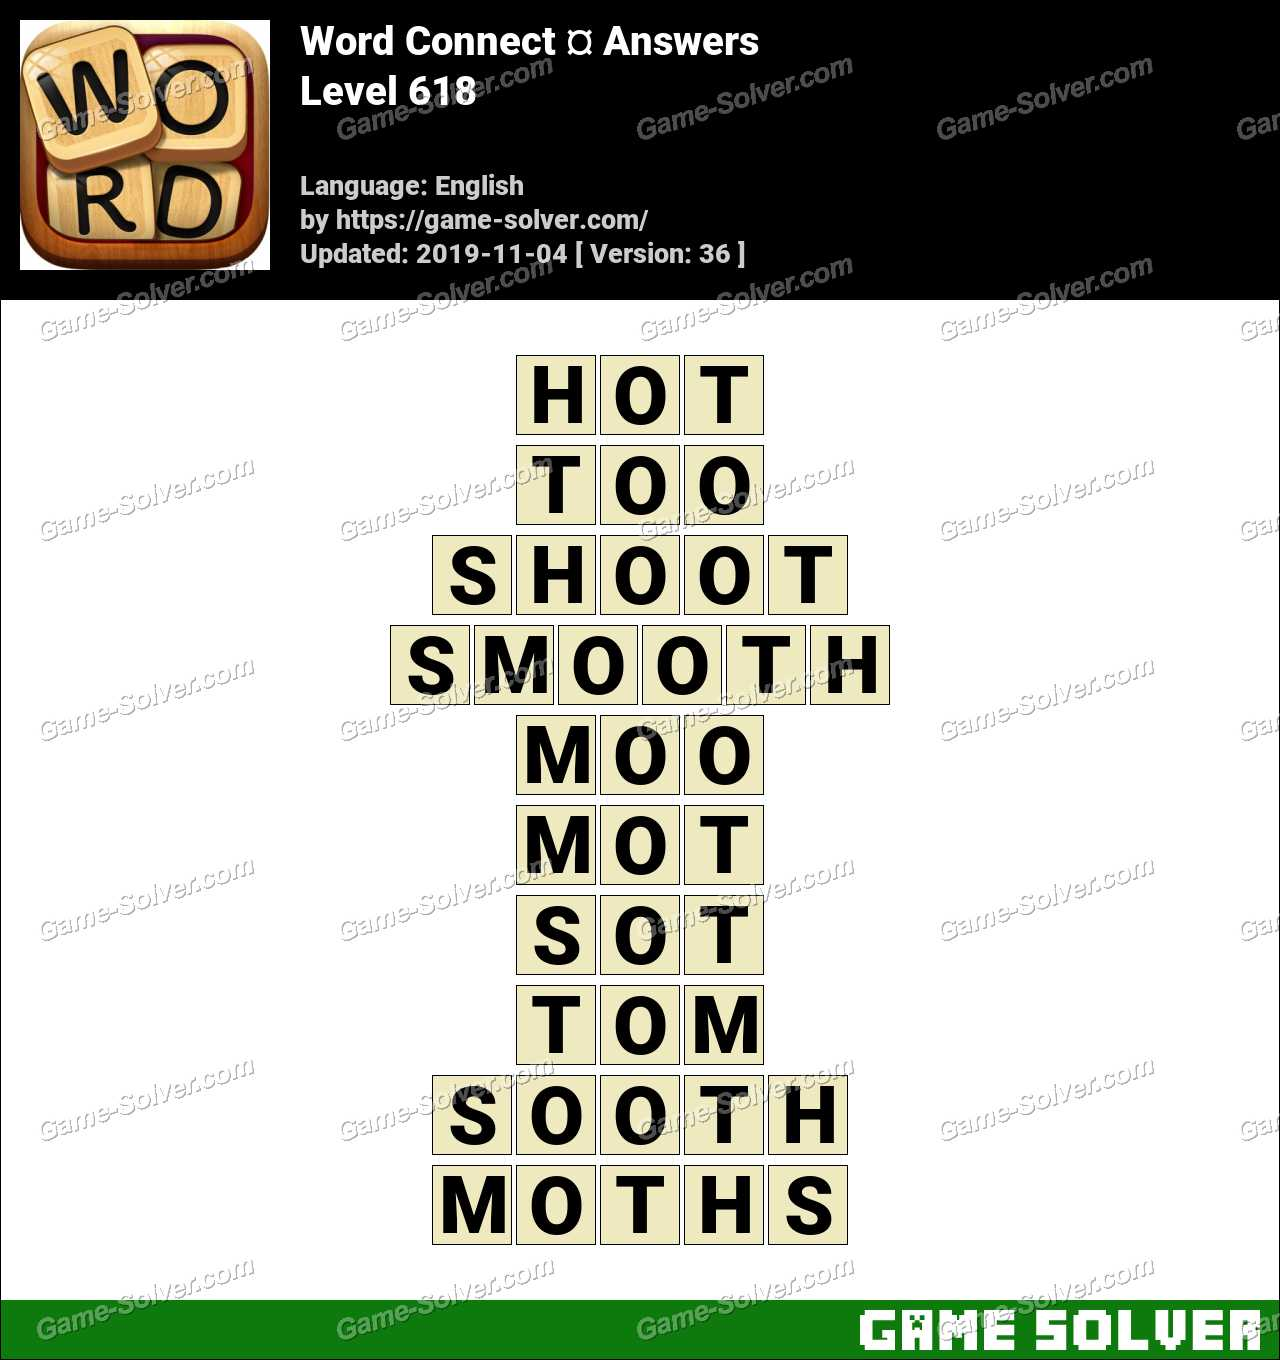 Word Connect Level 618 Answers